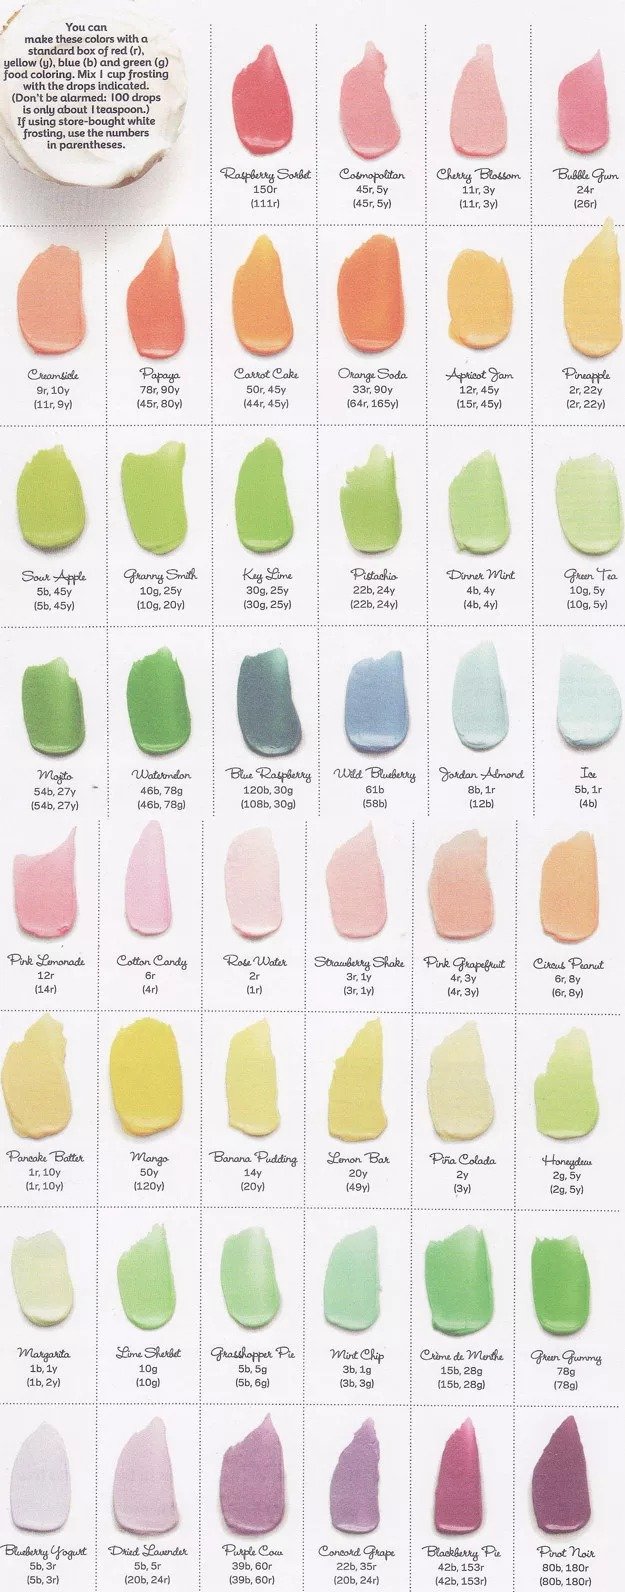 Frost by Numbers: How to Make Frosting Colors